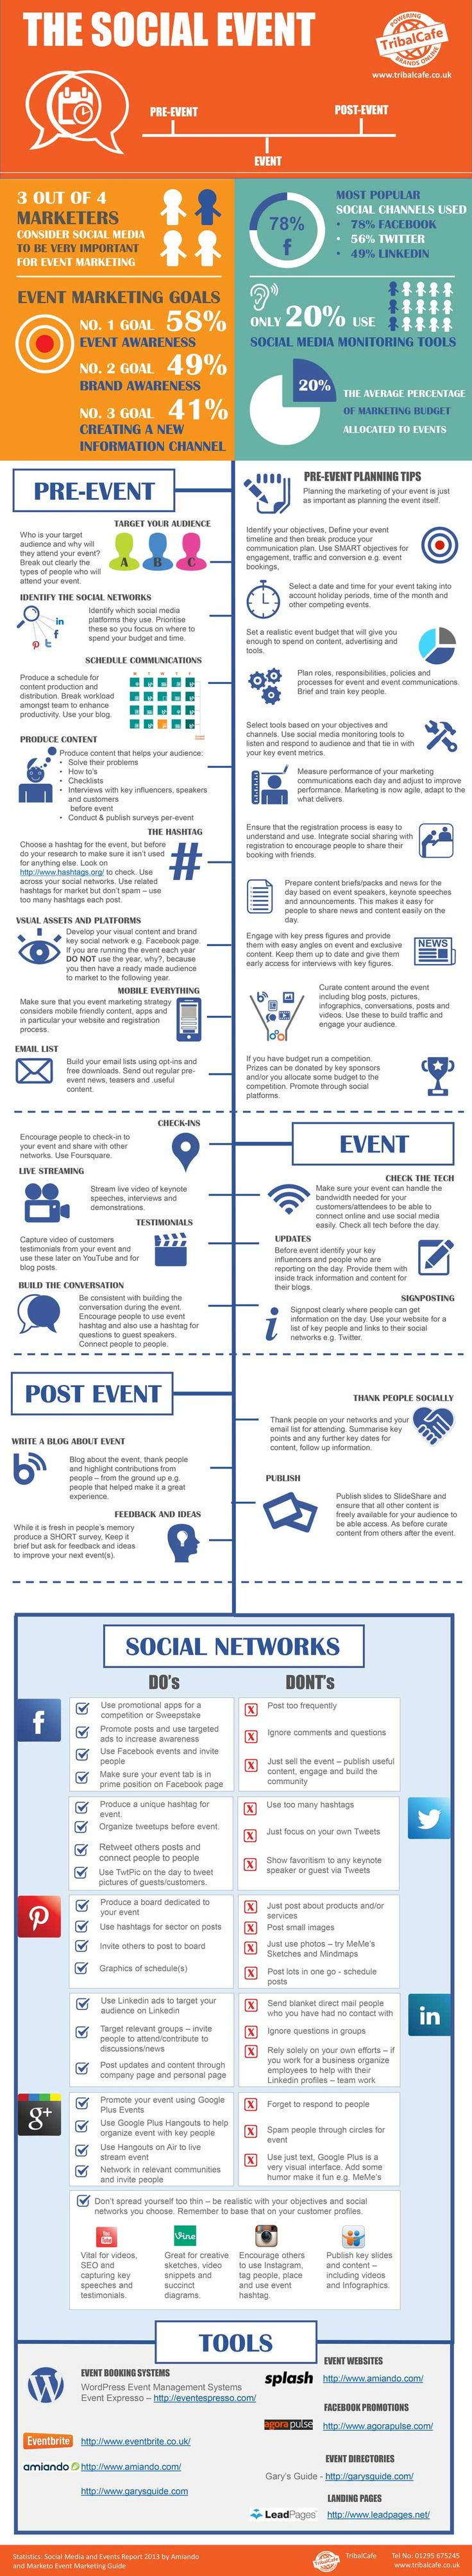 Learn how to use social media marketing to build buzz and and boost event attendance with these tips.